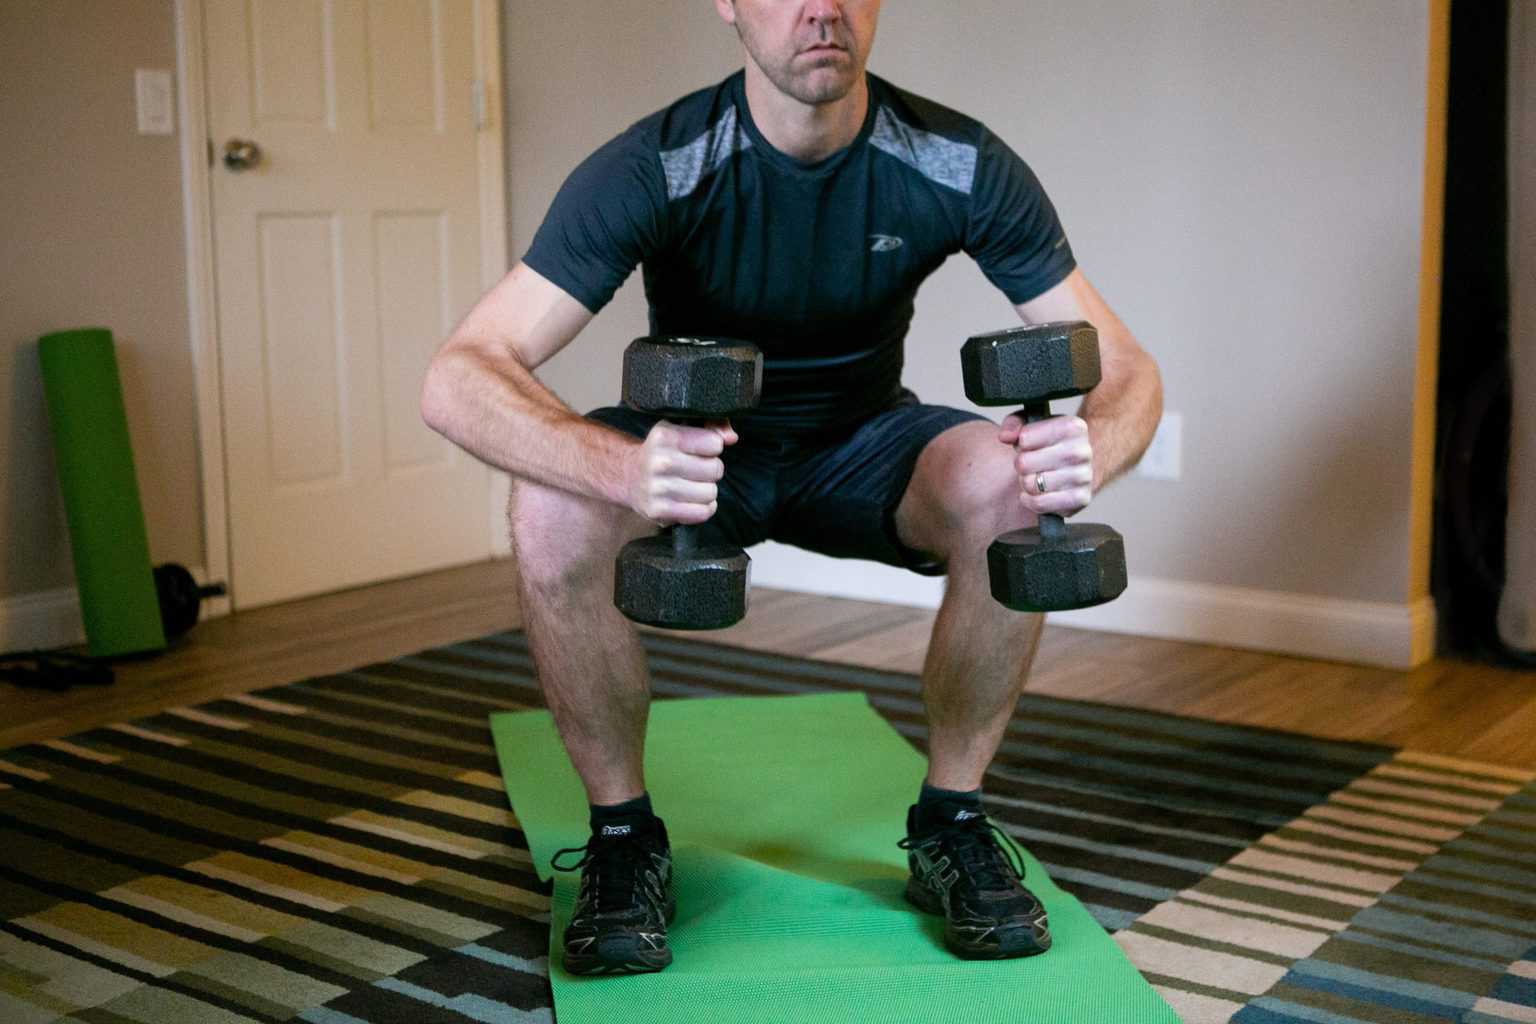 Man doing dumbbell squats while holding dumbbells with each hand